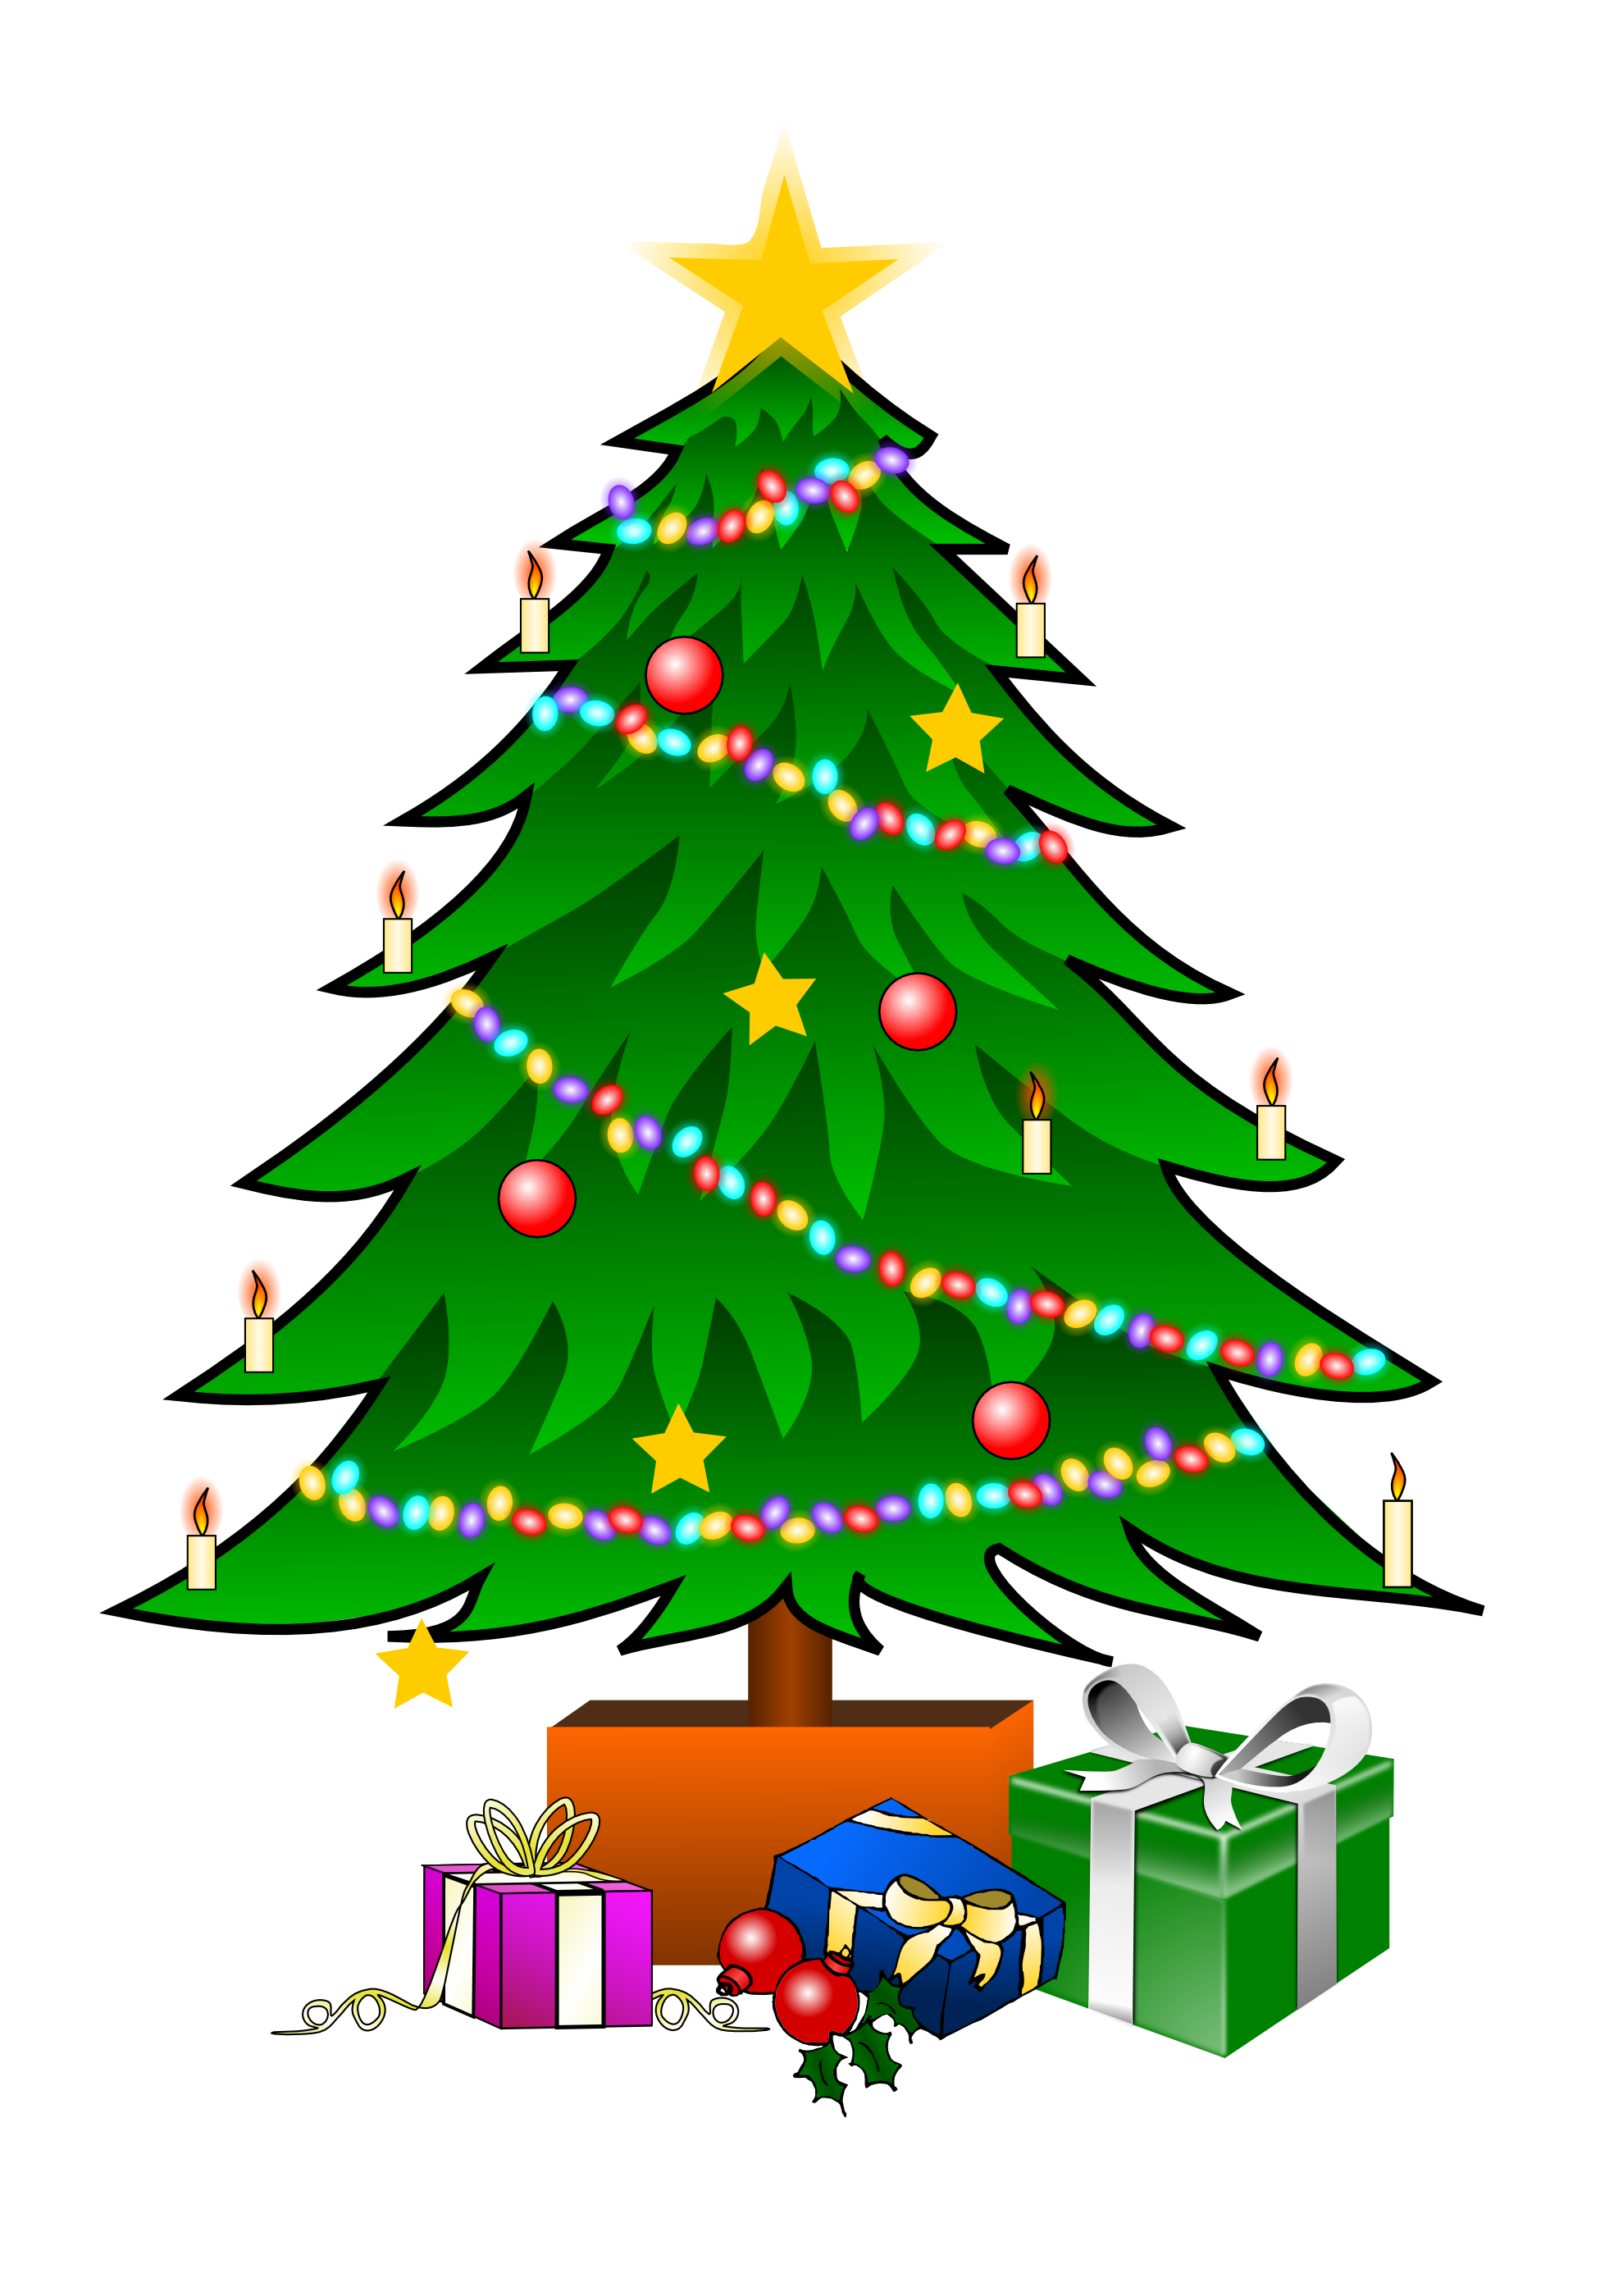 Tree transparent png pictures. December clipart merry christmas